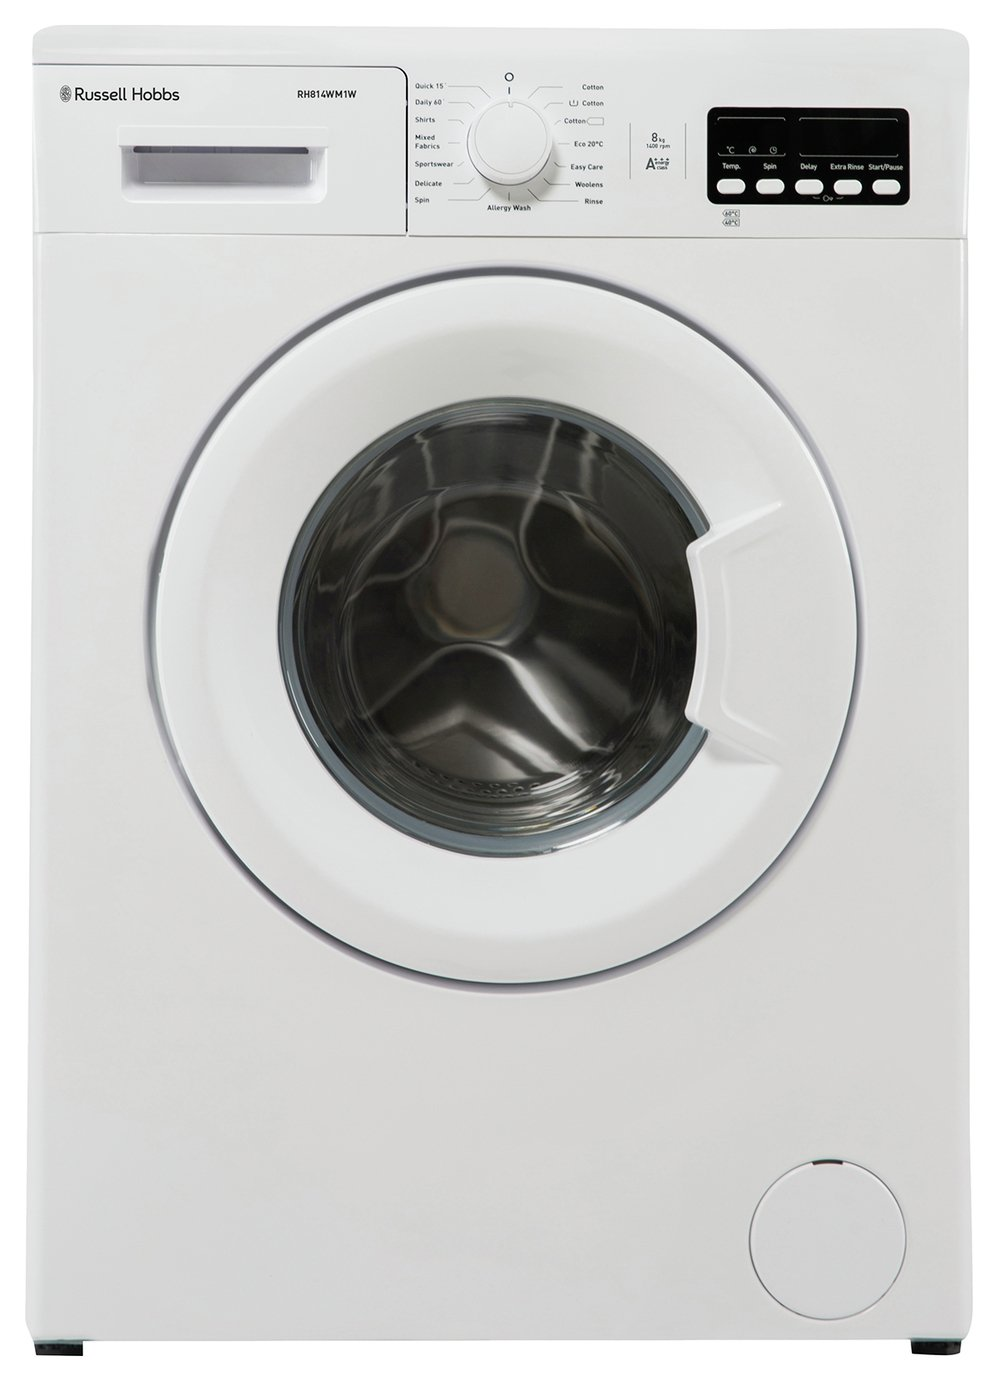 Russell Hobbs RH814WM1W 8KG 1400 Washing Machine - White